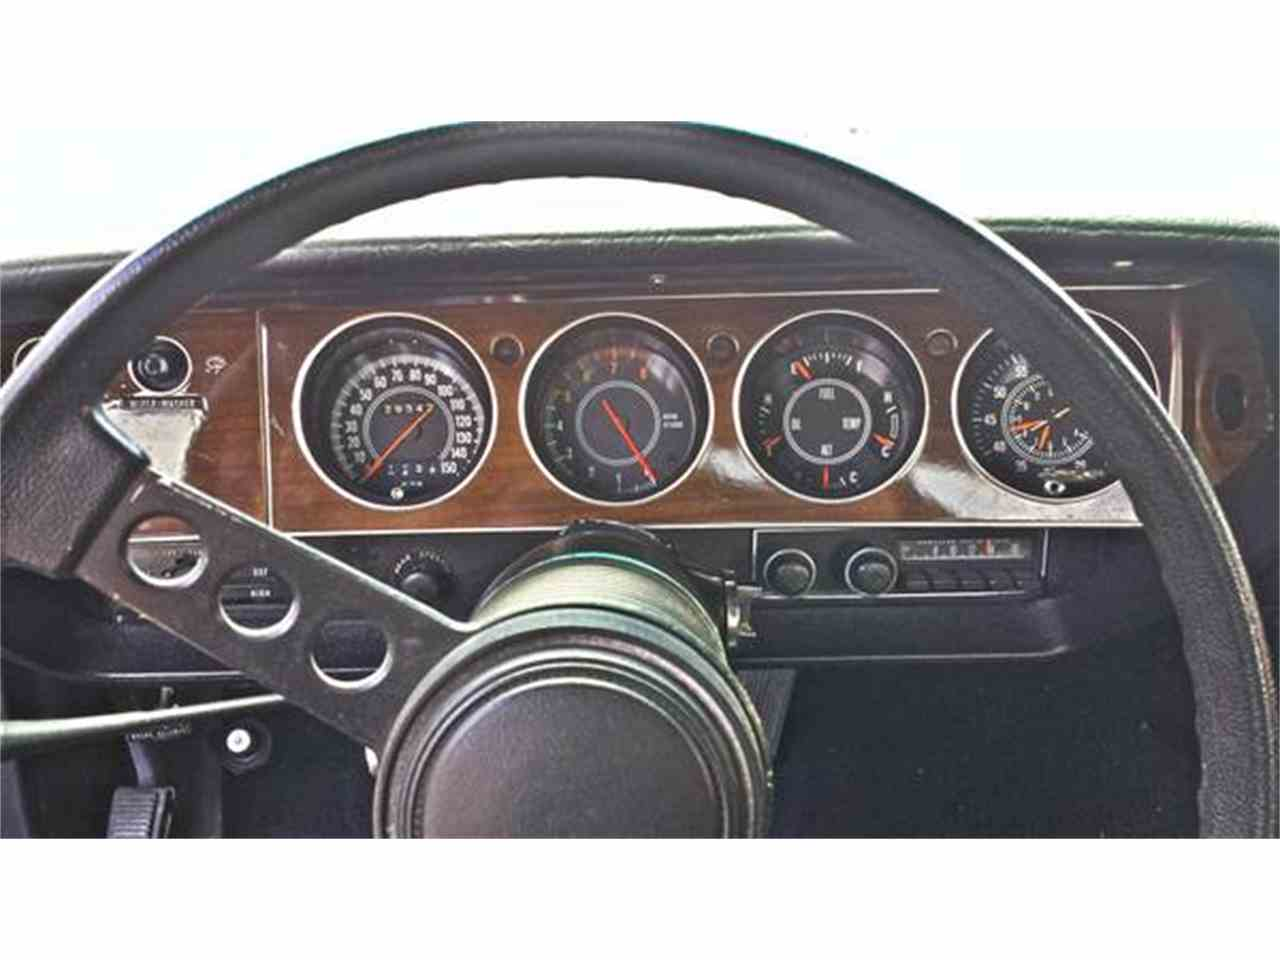 Large Picture of 1974 Plymouth Cuda - $40,000.00 Offered by a Private Seller - BI38